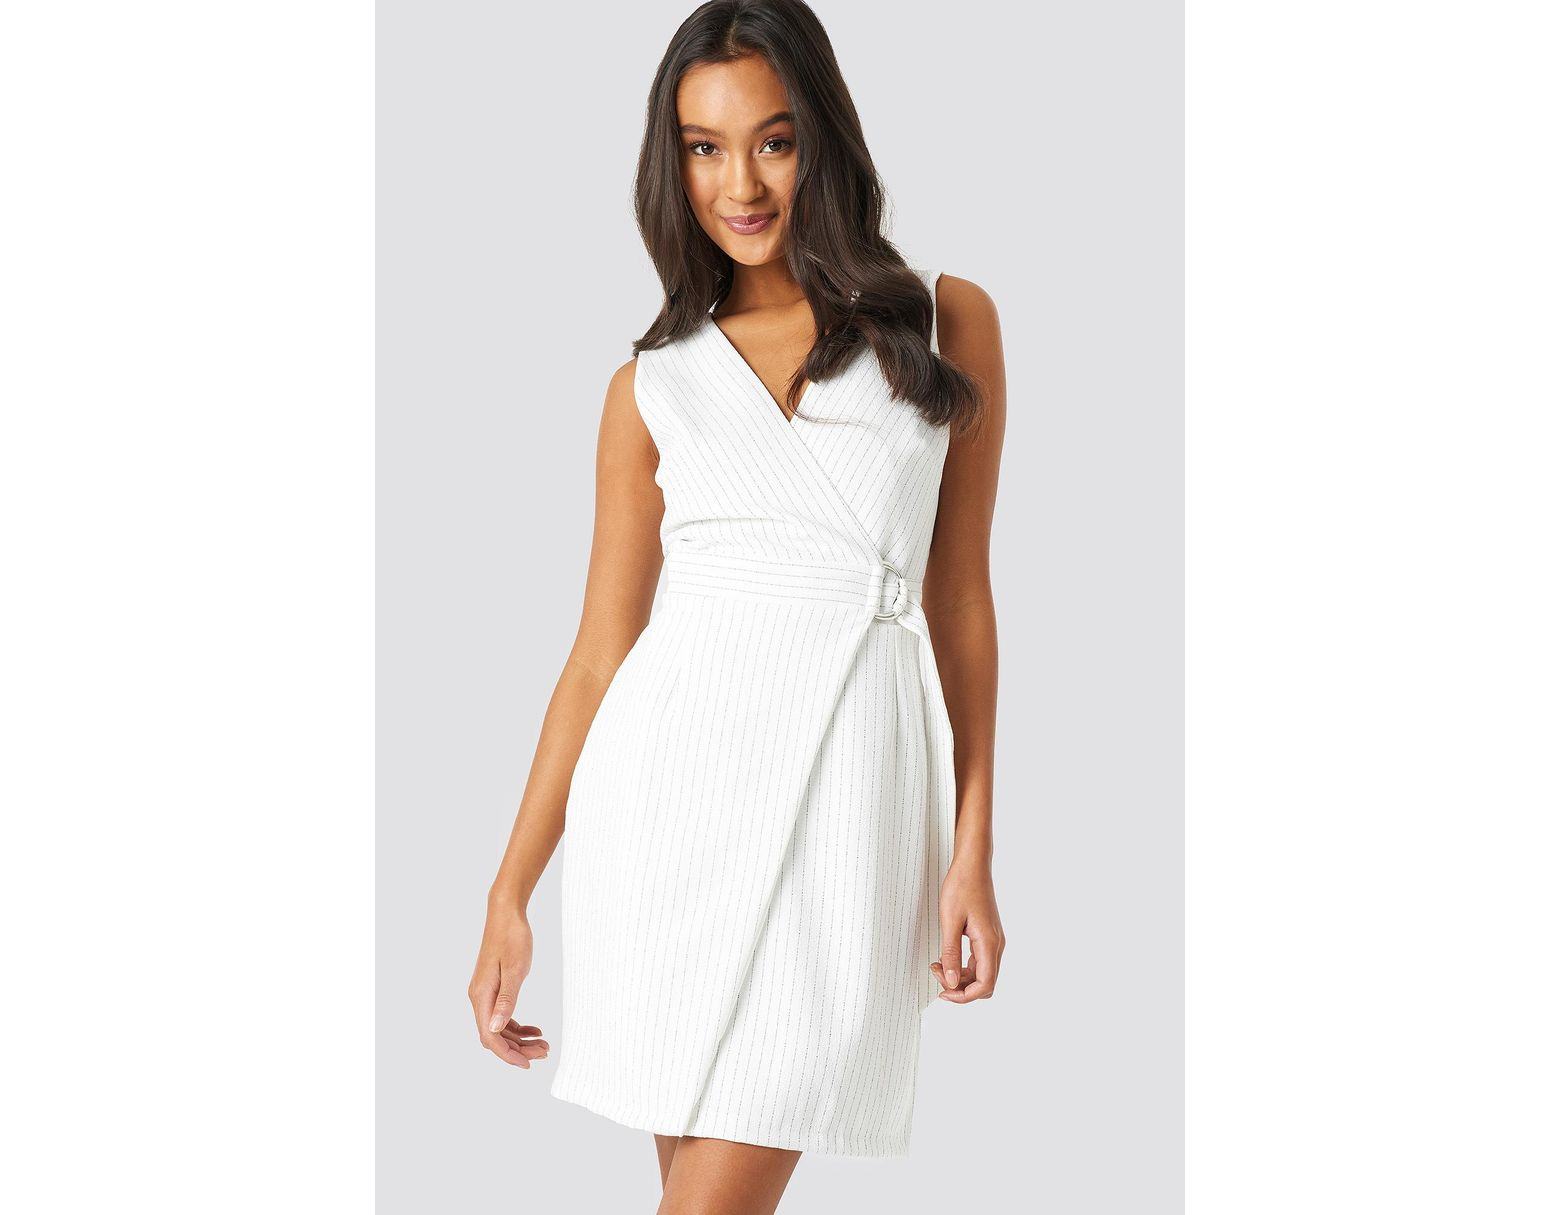 faf1cf27a Trendyol Buckle Detailed Dress White in White - Lyst